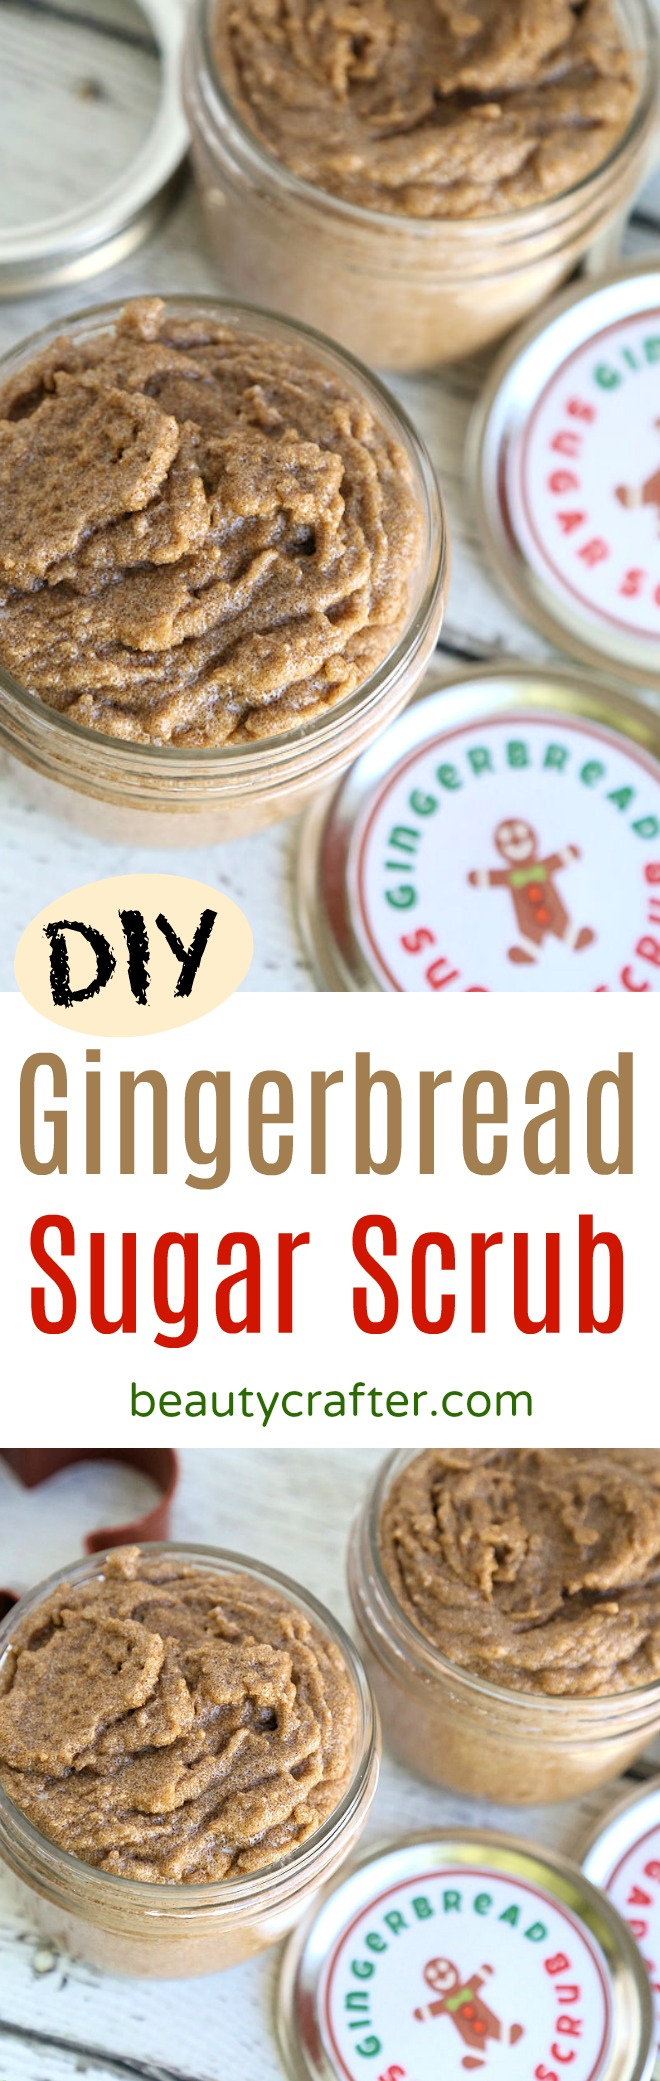 DIY Gingerbread Sugar Scrub recipe